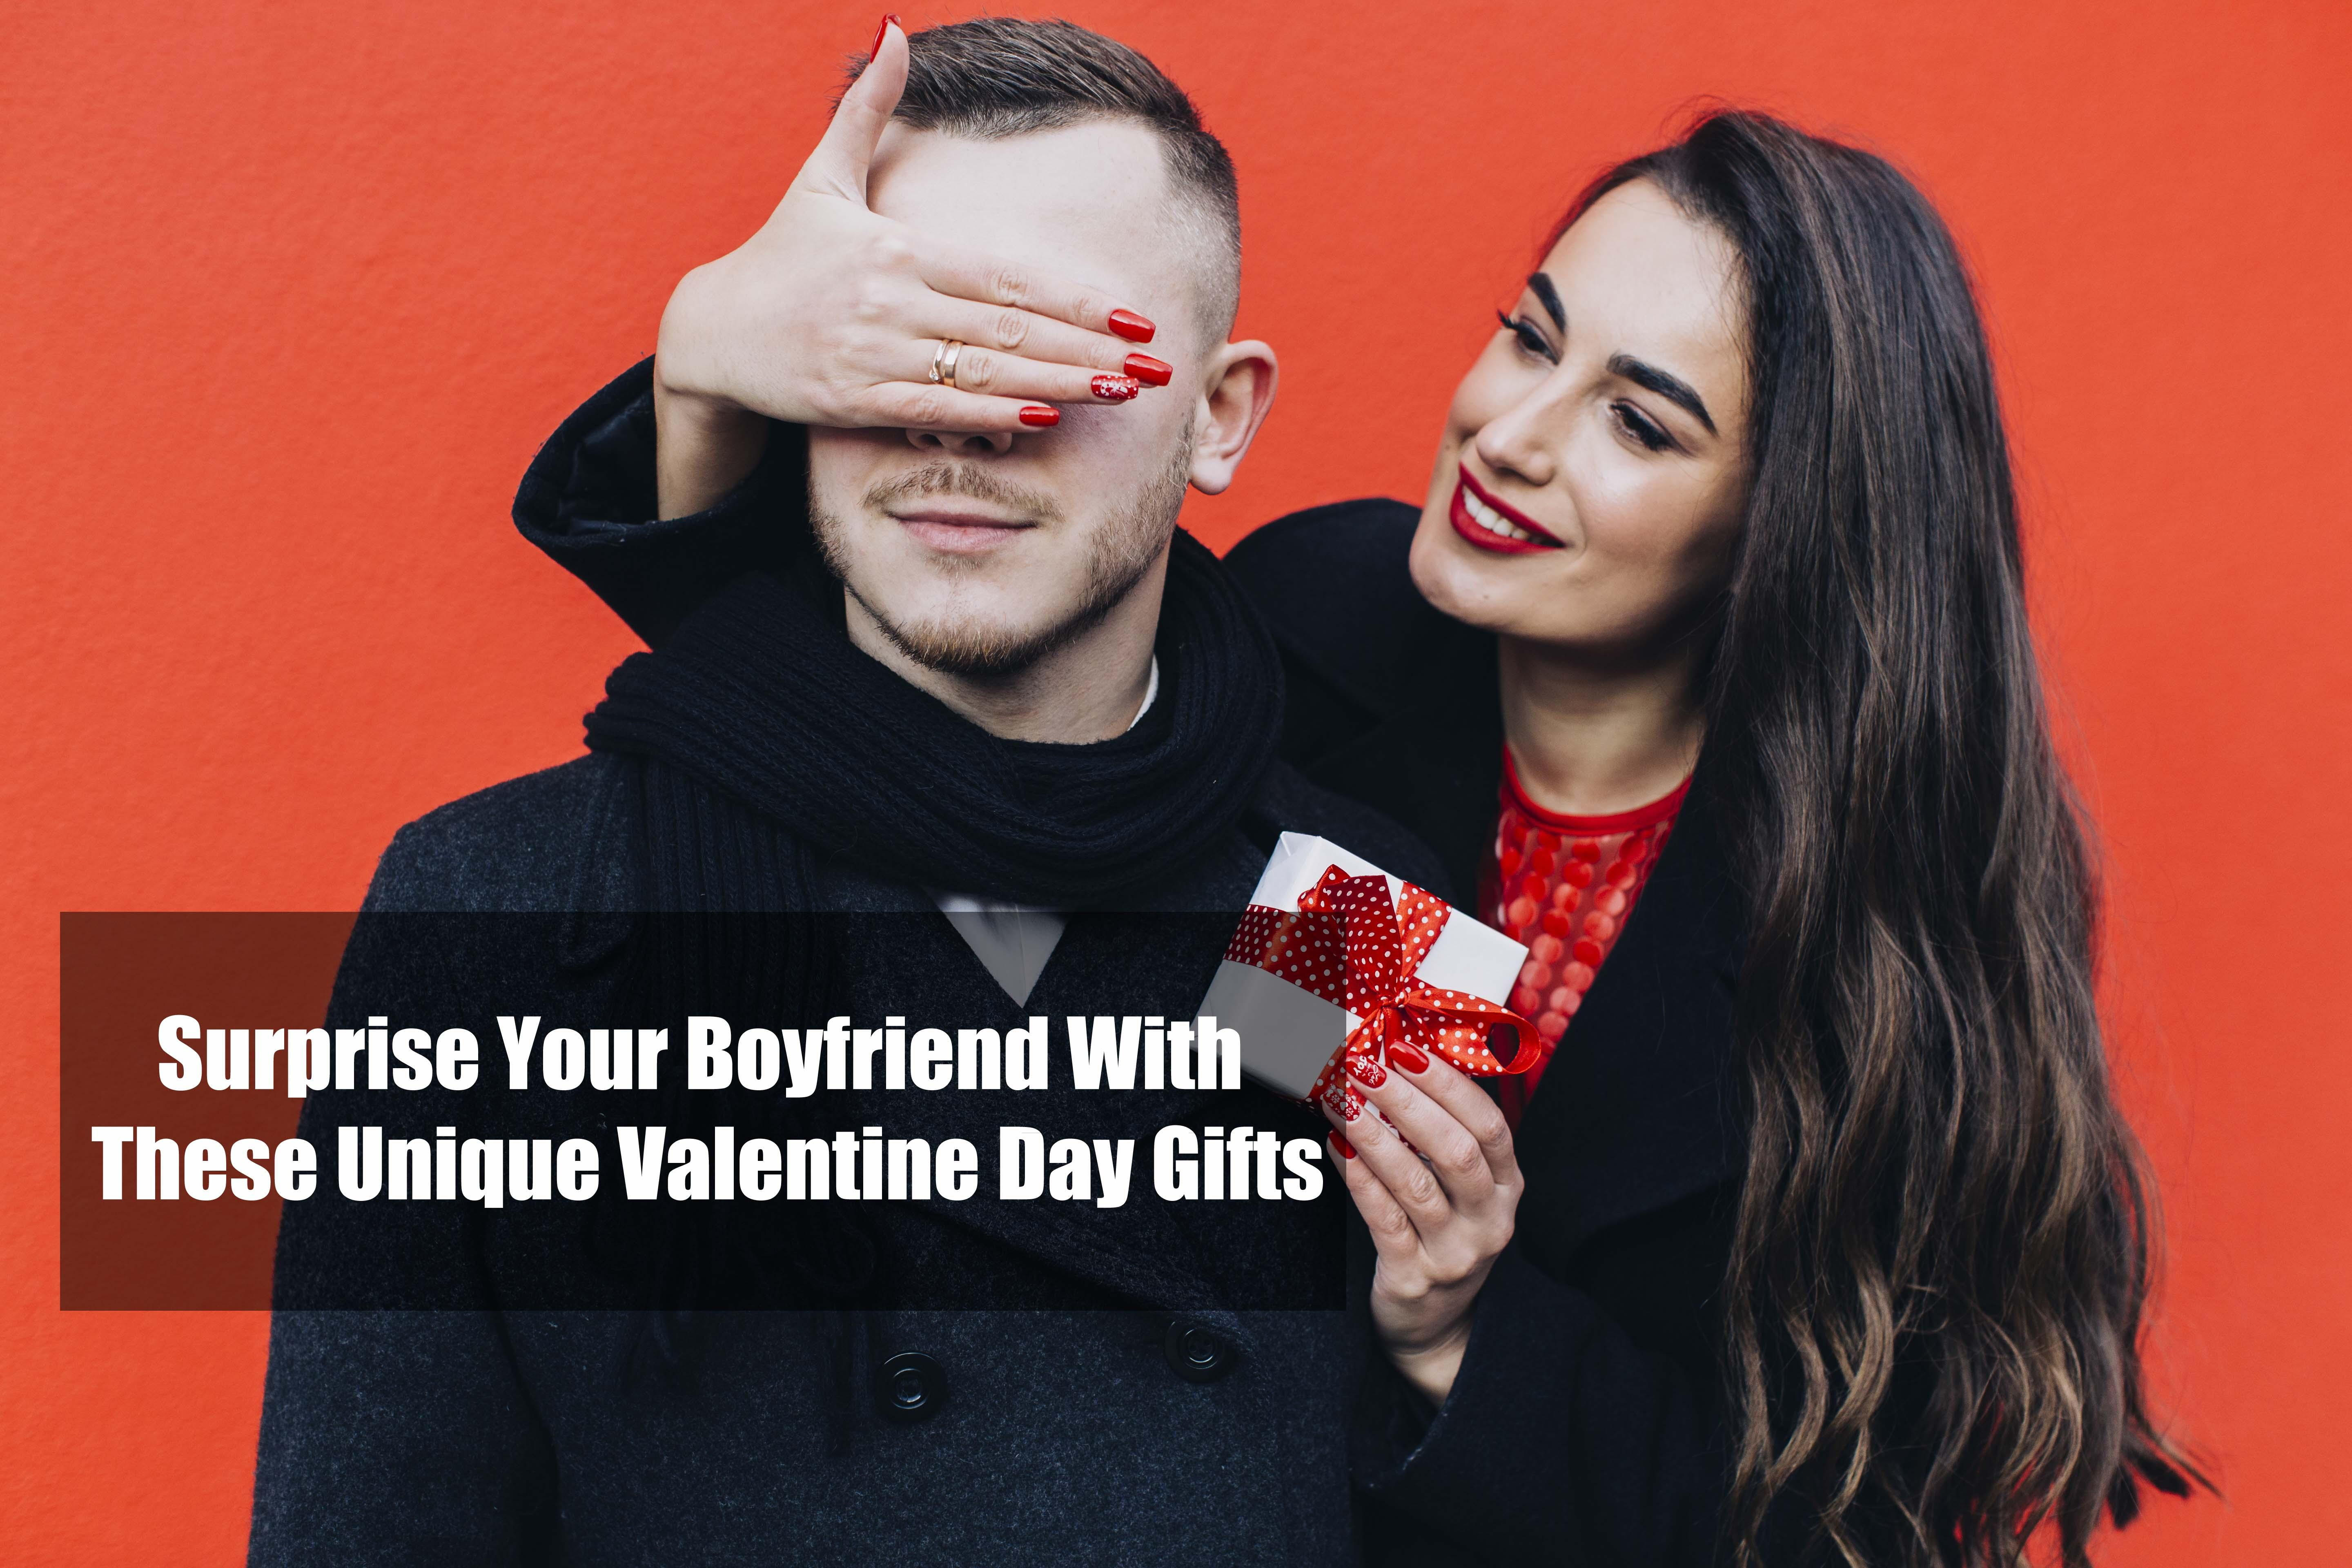 Surprise Your Boyfriend With These Unique Valentine Day Gifts